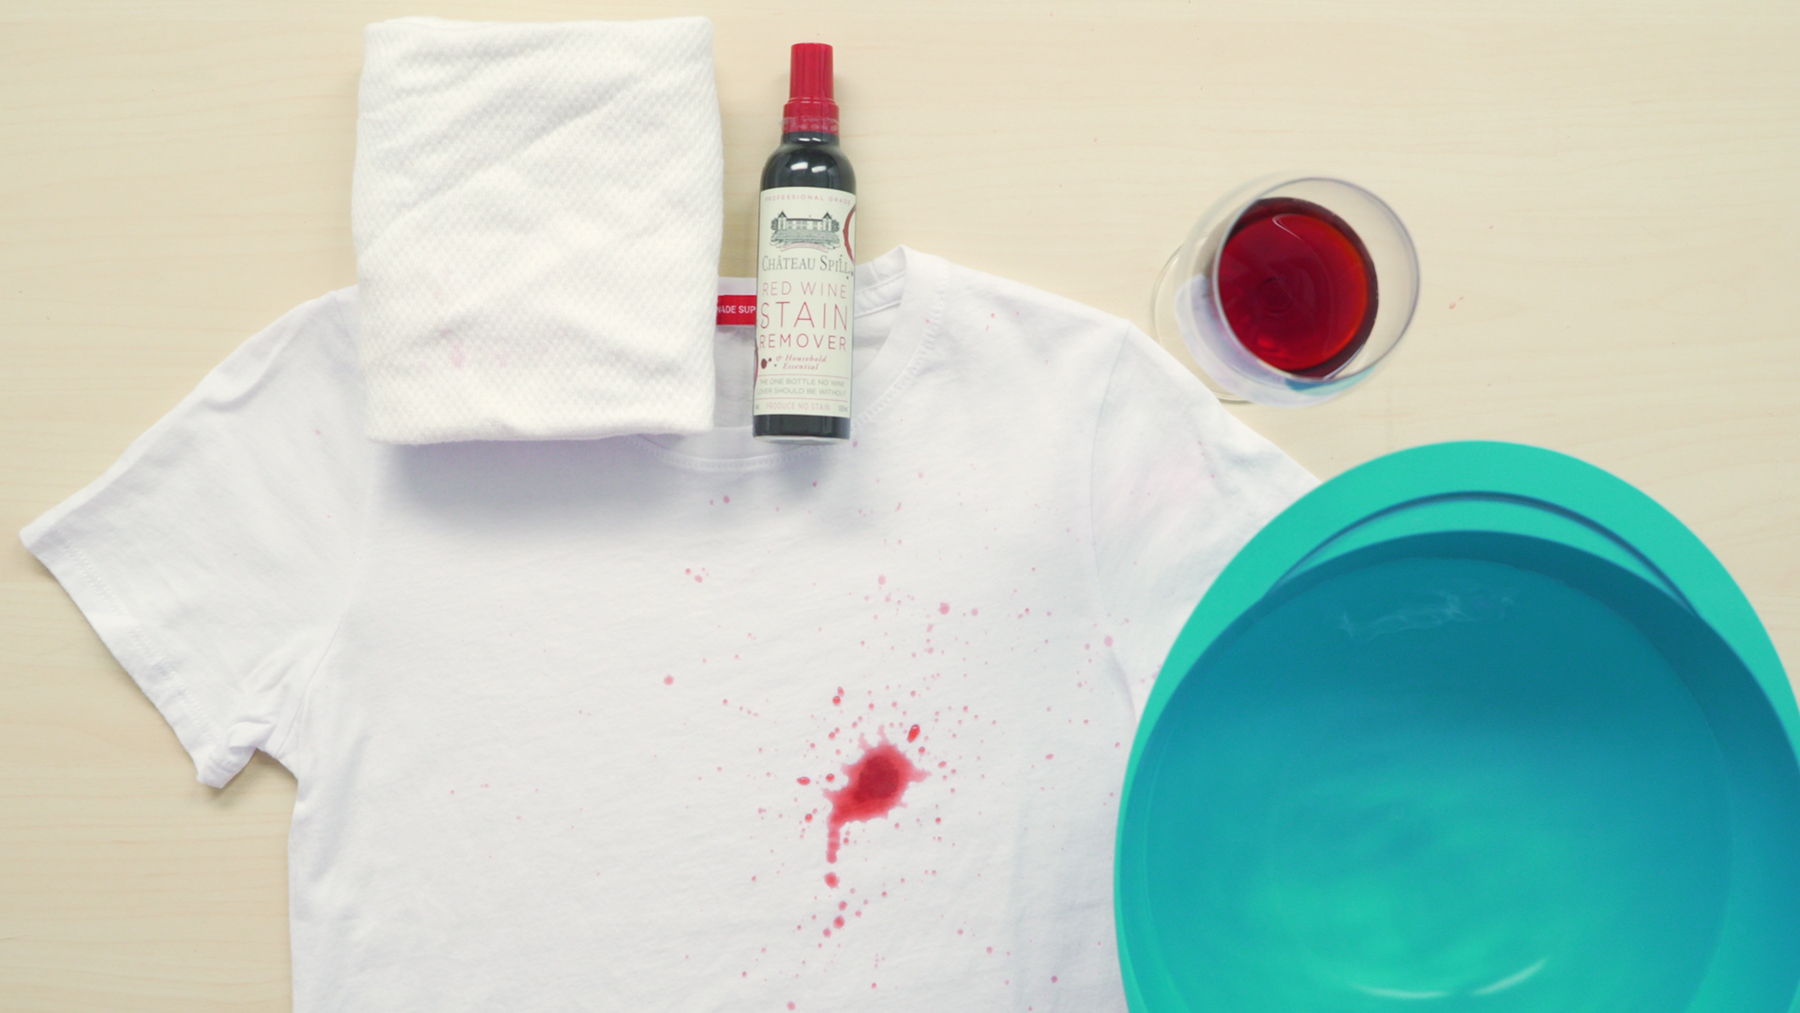 Fashion emergency (red wine stain)